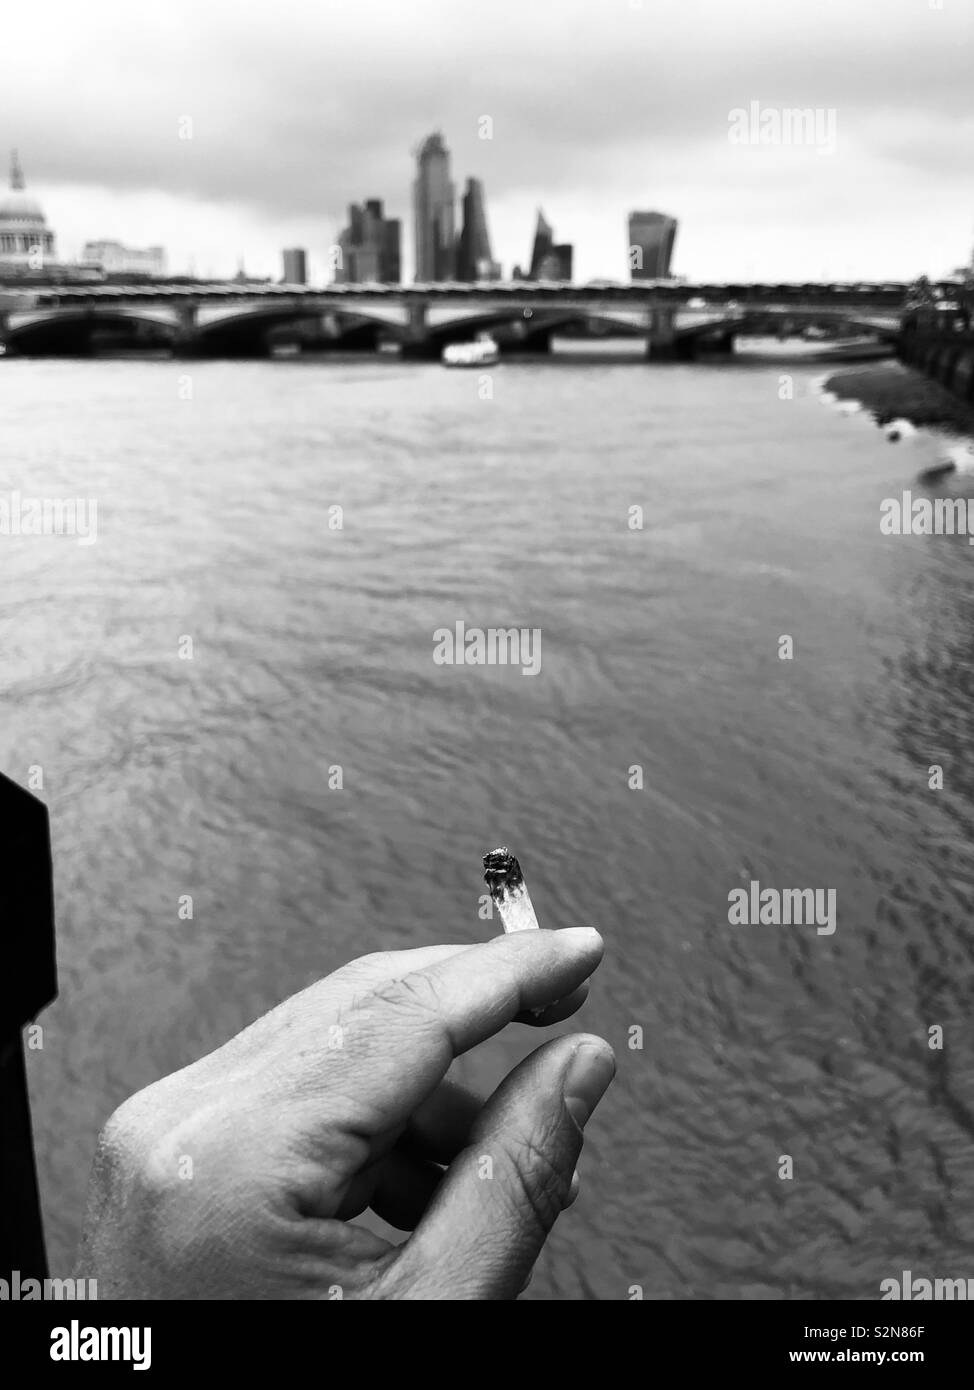 Hand of a man who is smoking by the river Thames - Stock Image